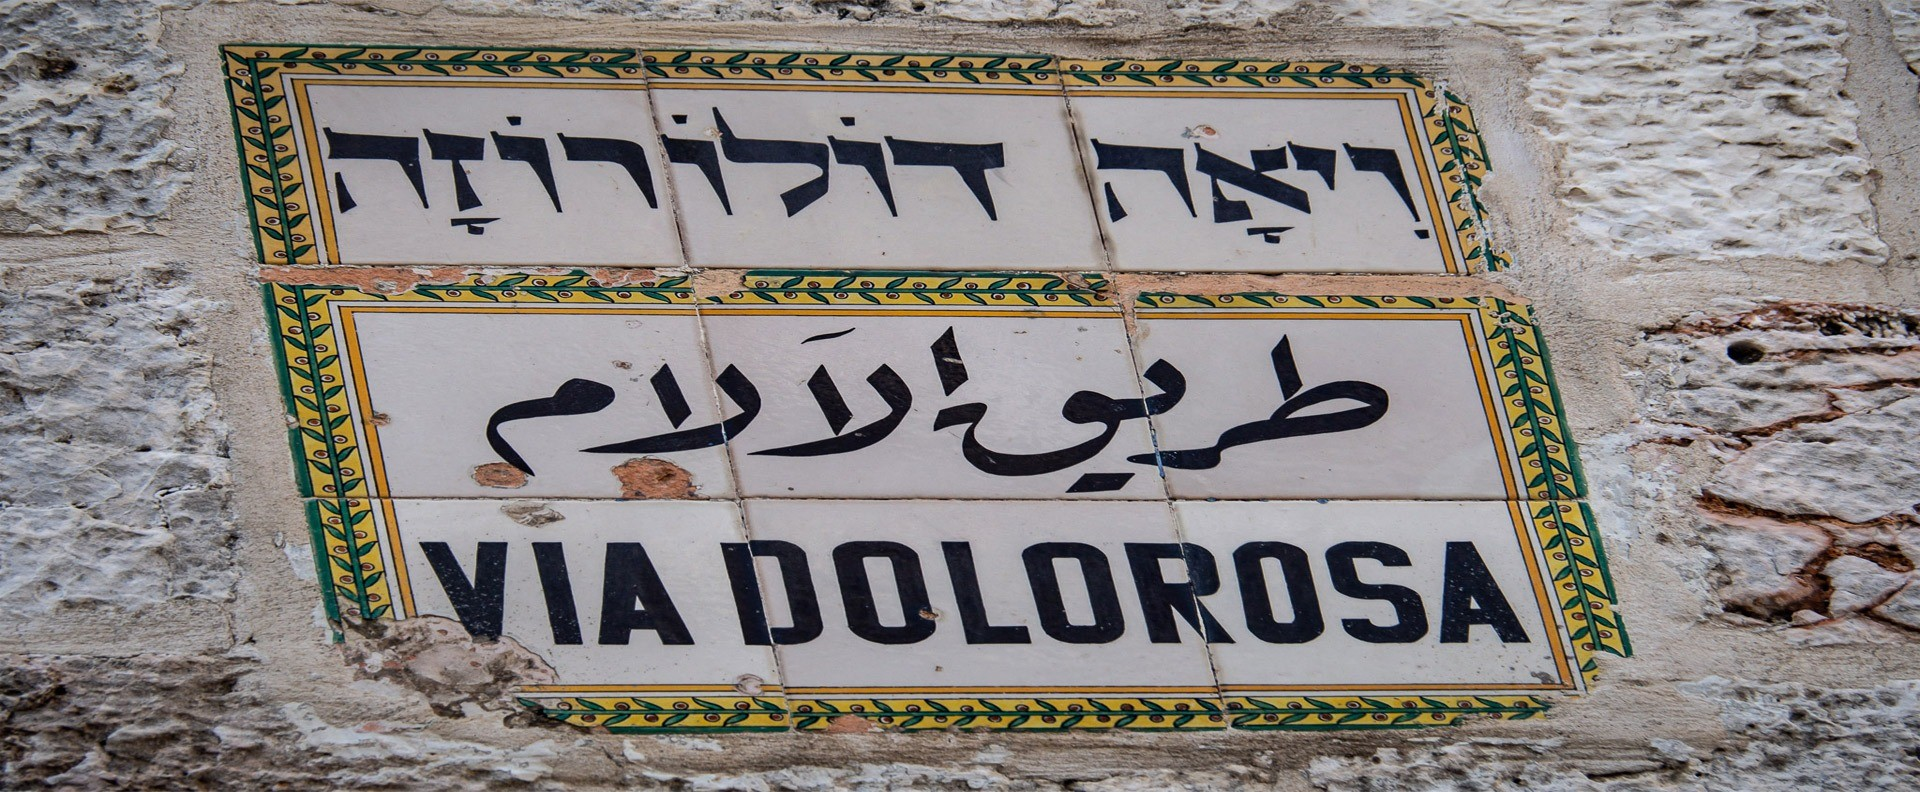 Via Dolorosa in Jerusalem Israel